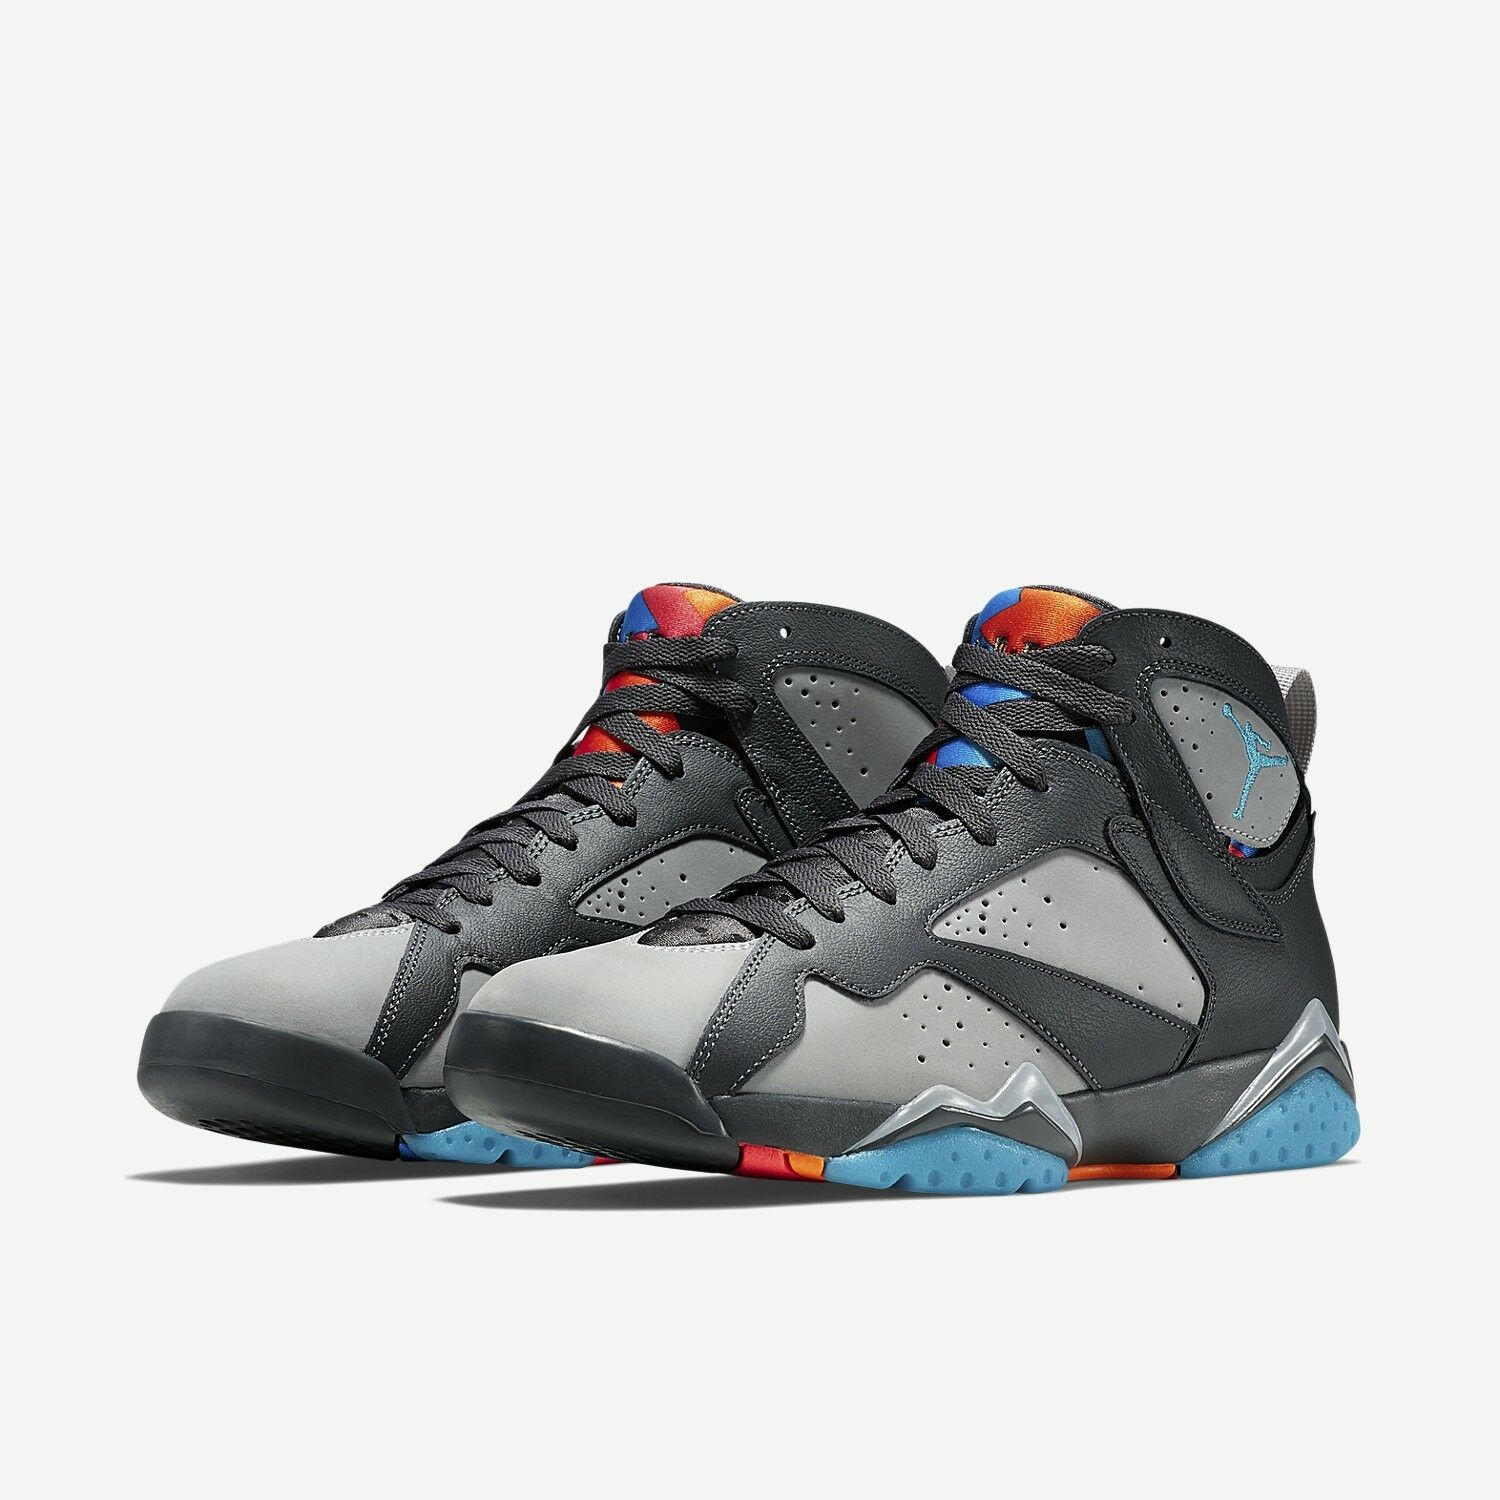 304775-016 NIke Air Jordan 7 VII Retro Barcelona Days Bobcats